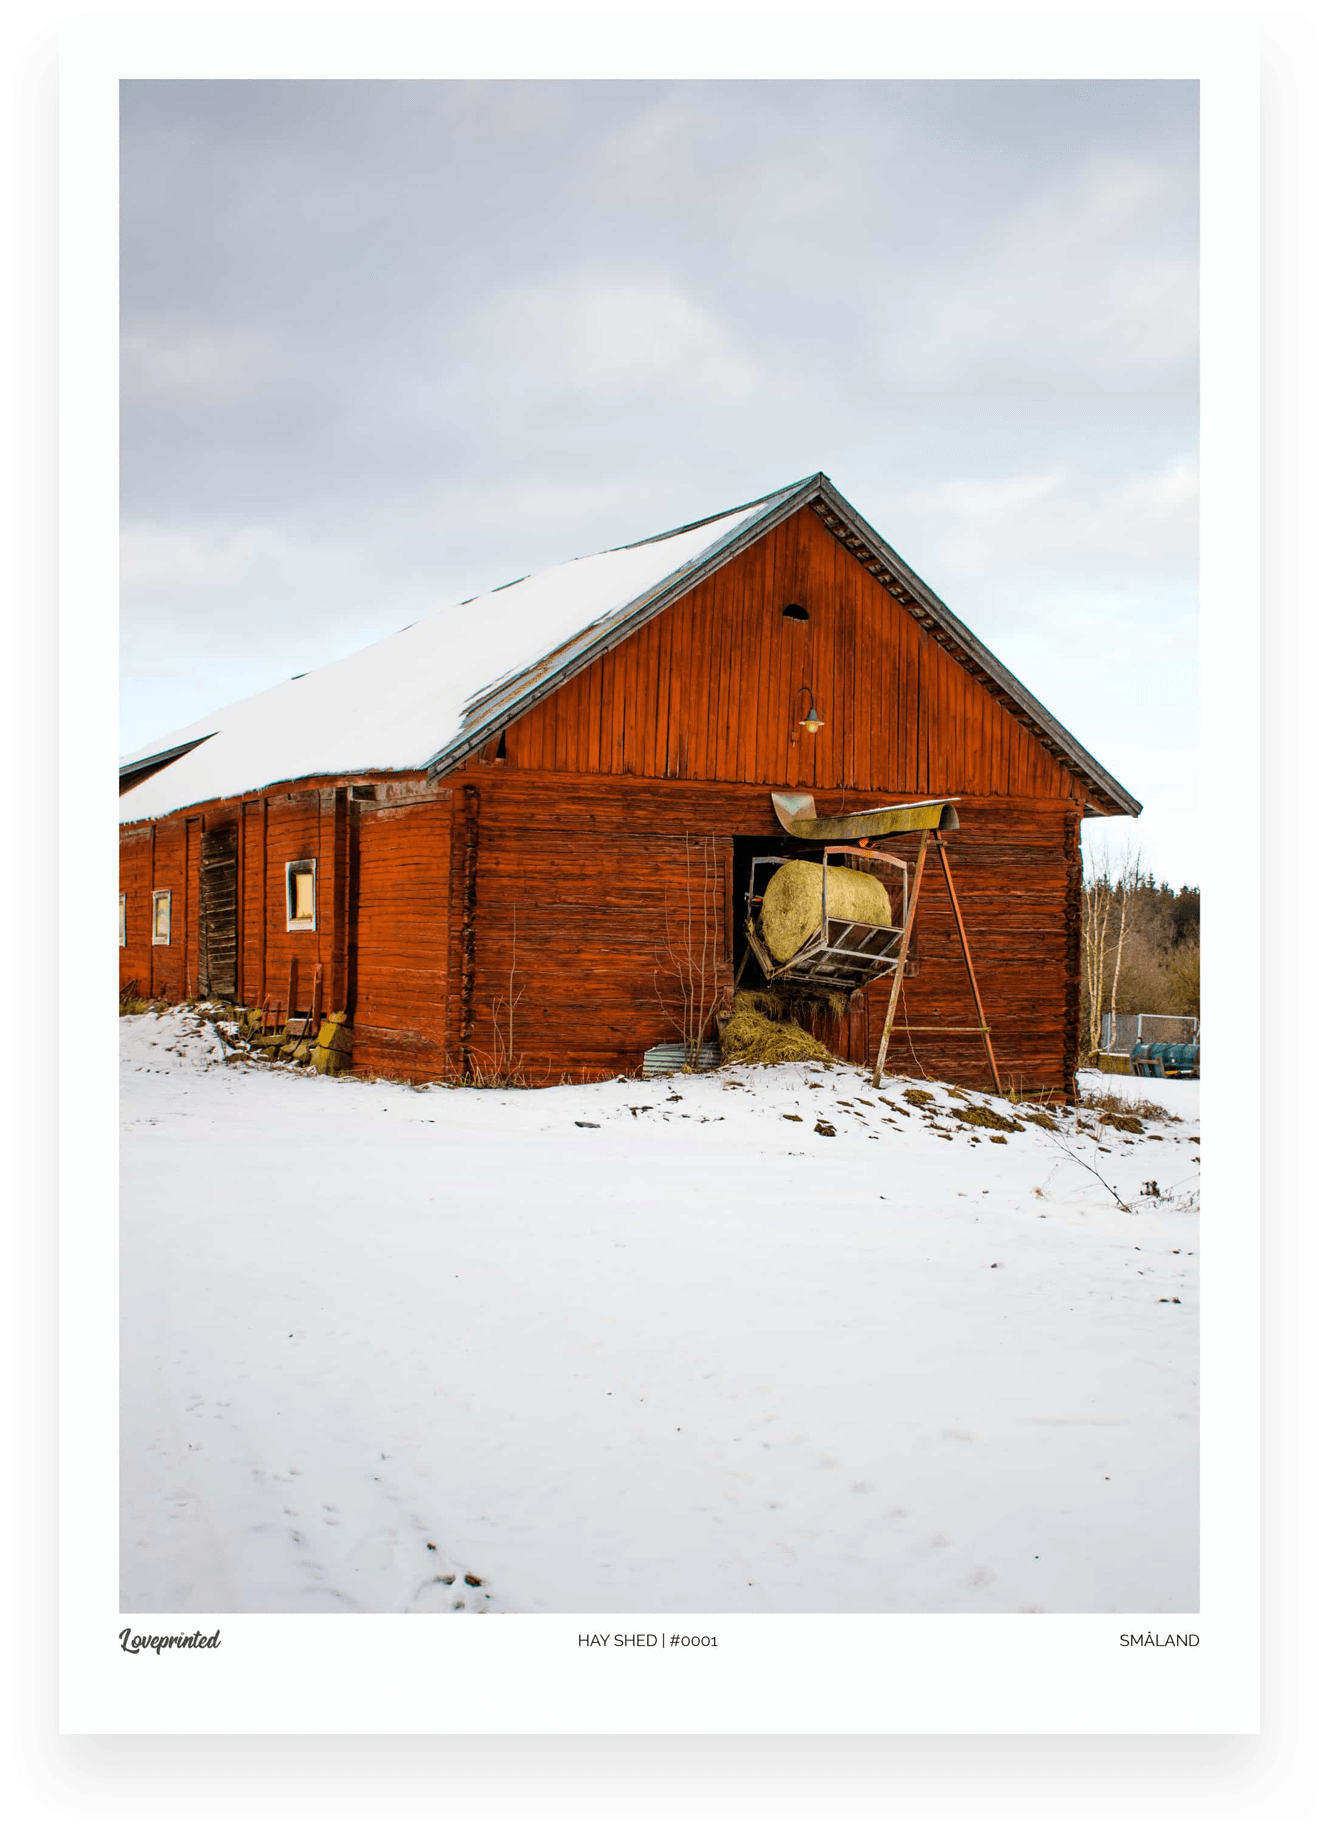 Hay shed | An Image of a Swedish red barn with haystacks made by Loveprinted